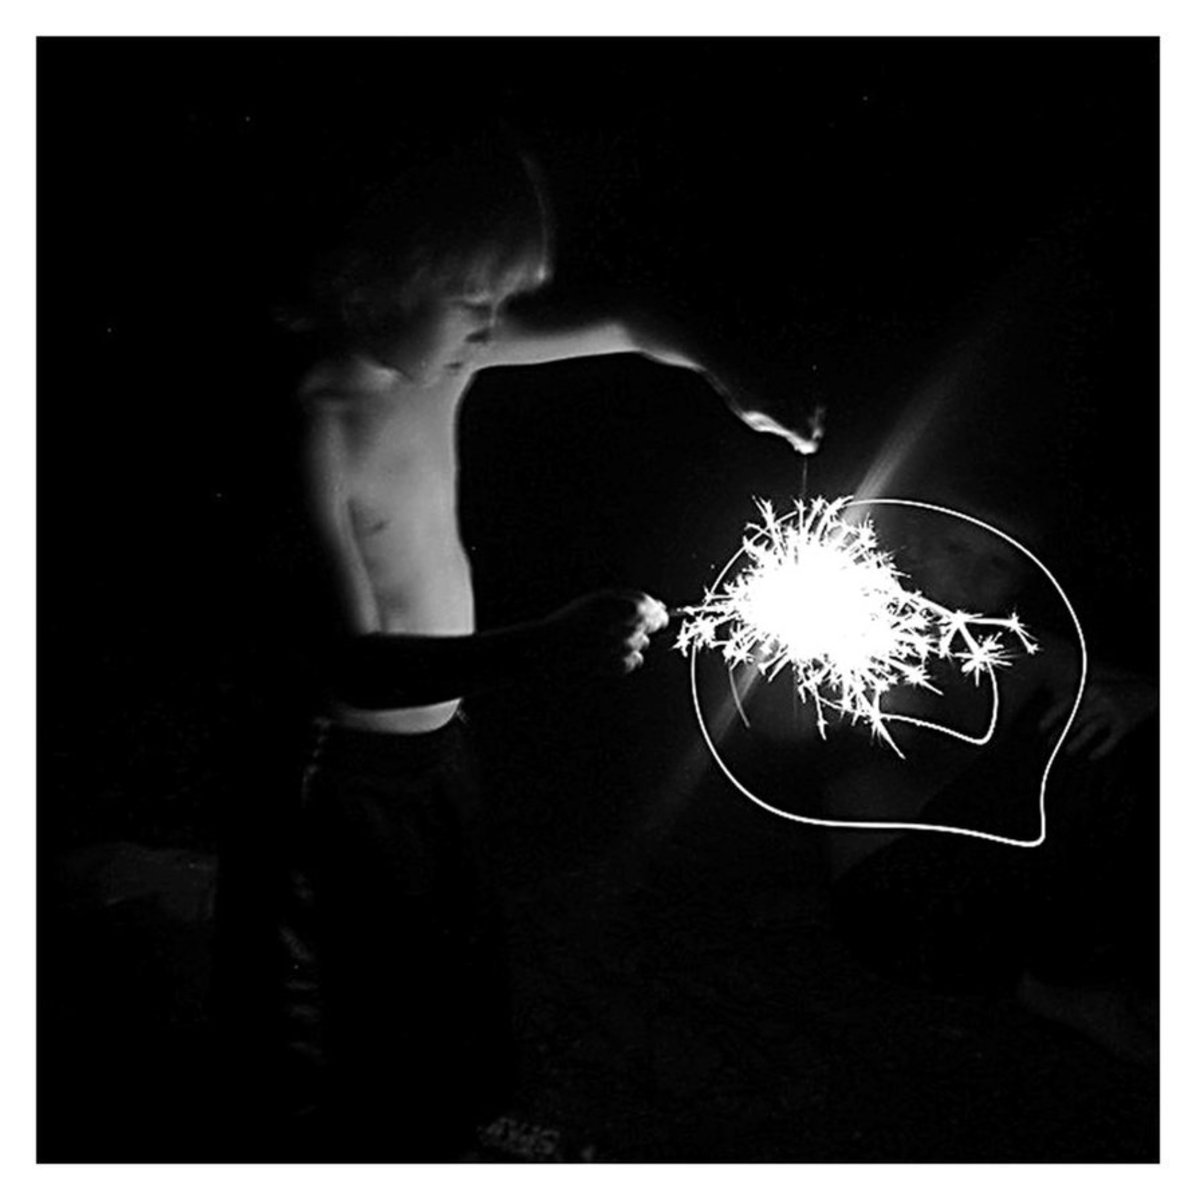 FIRECRACKER When I took this photograph, I knew my light settings were off and that the lighting was impossible. I kept shooting and later discovered this image. The light opposed to the fading body can be symbolic of childhood and the bright future.